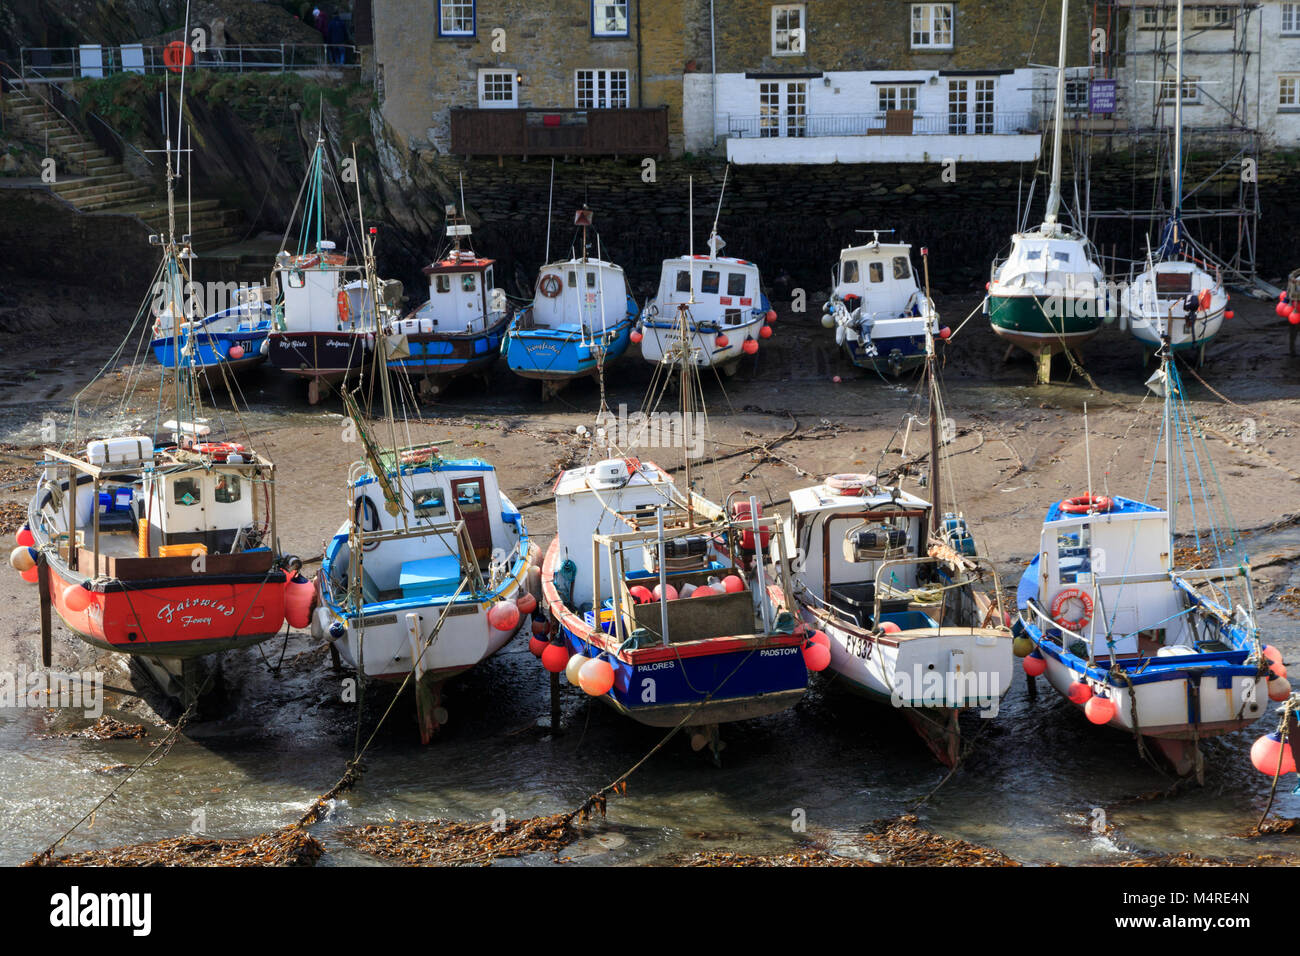 Colourful inshore fishing boats beached at low tide in Polperro harbour, Cornwall, UK - Stock Image